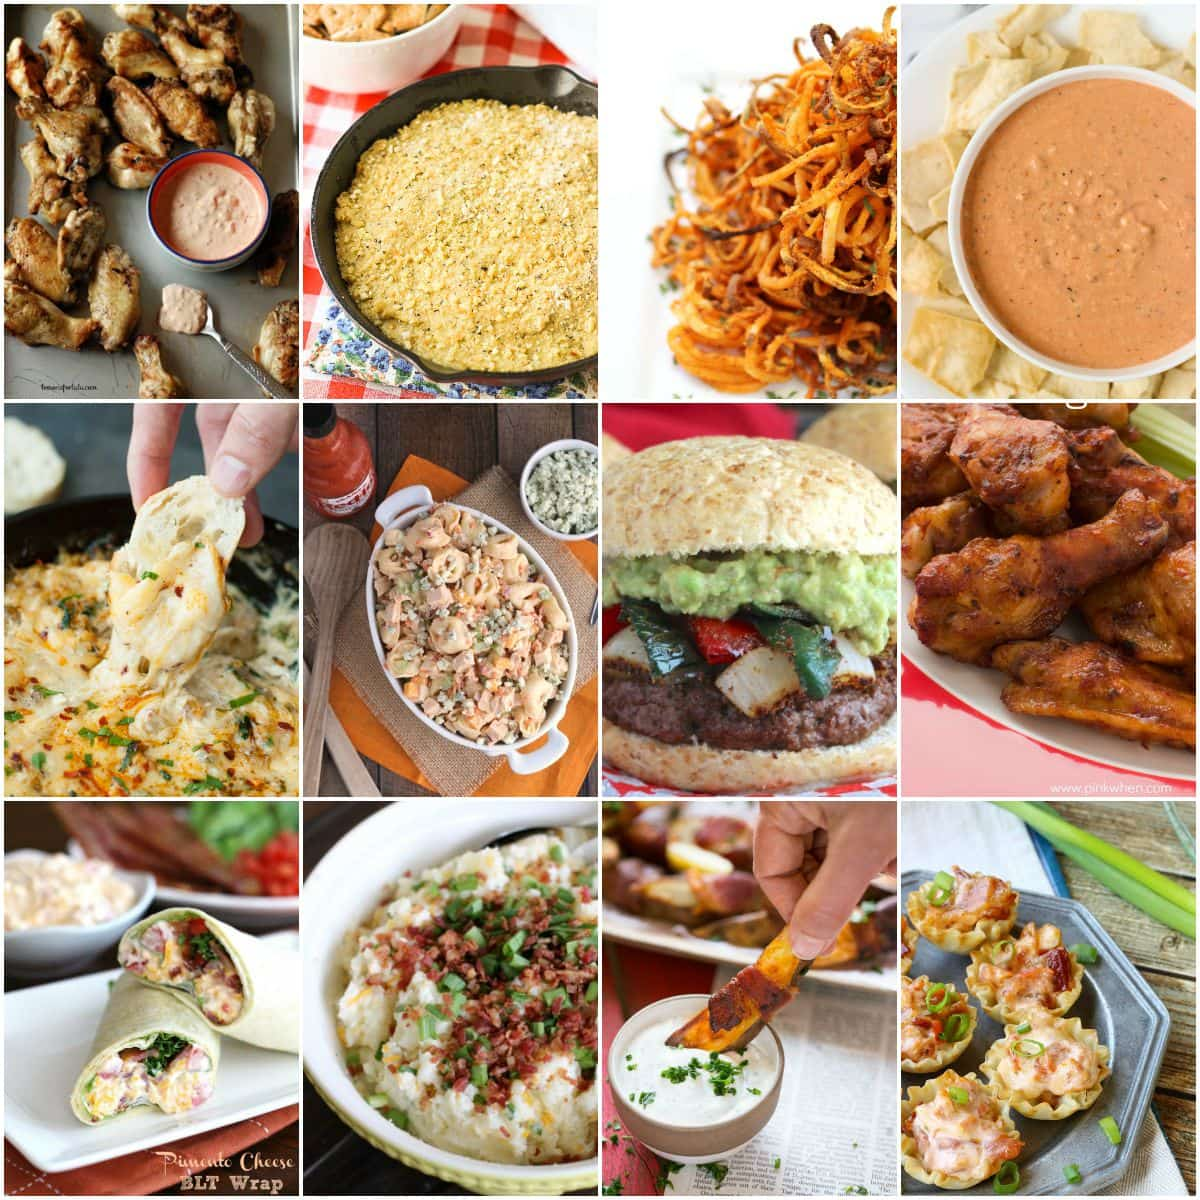 Football Tailgate Food Recipes